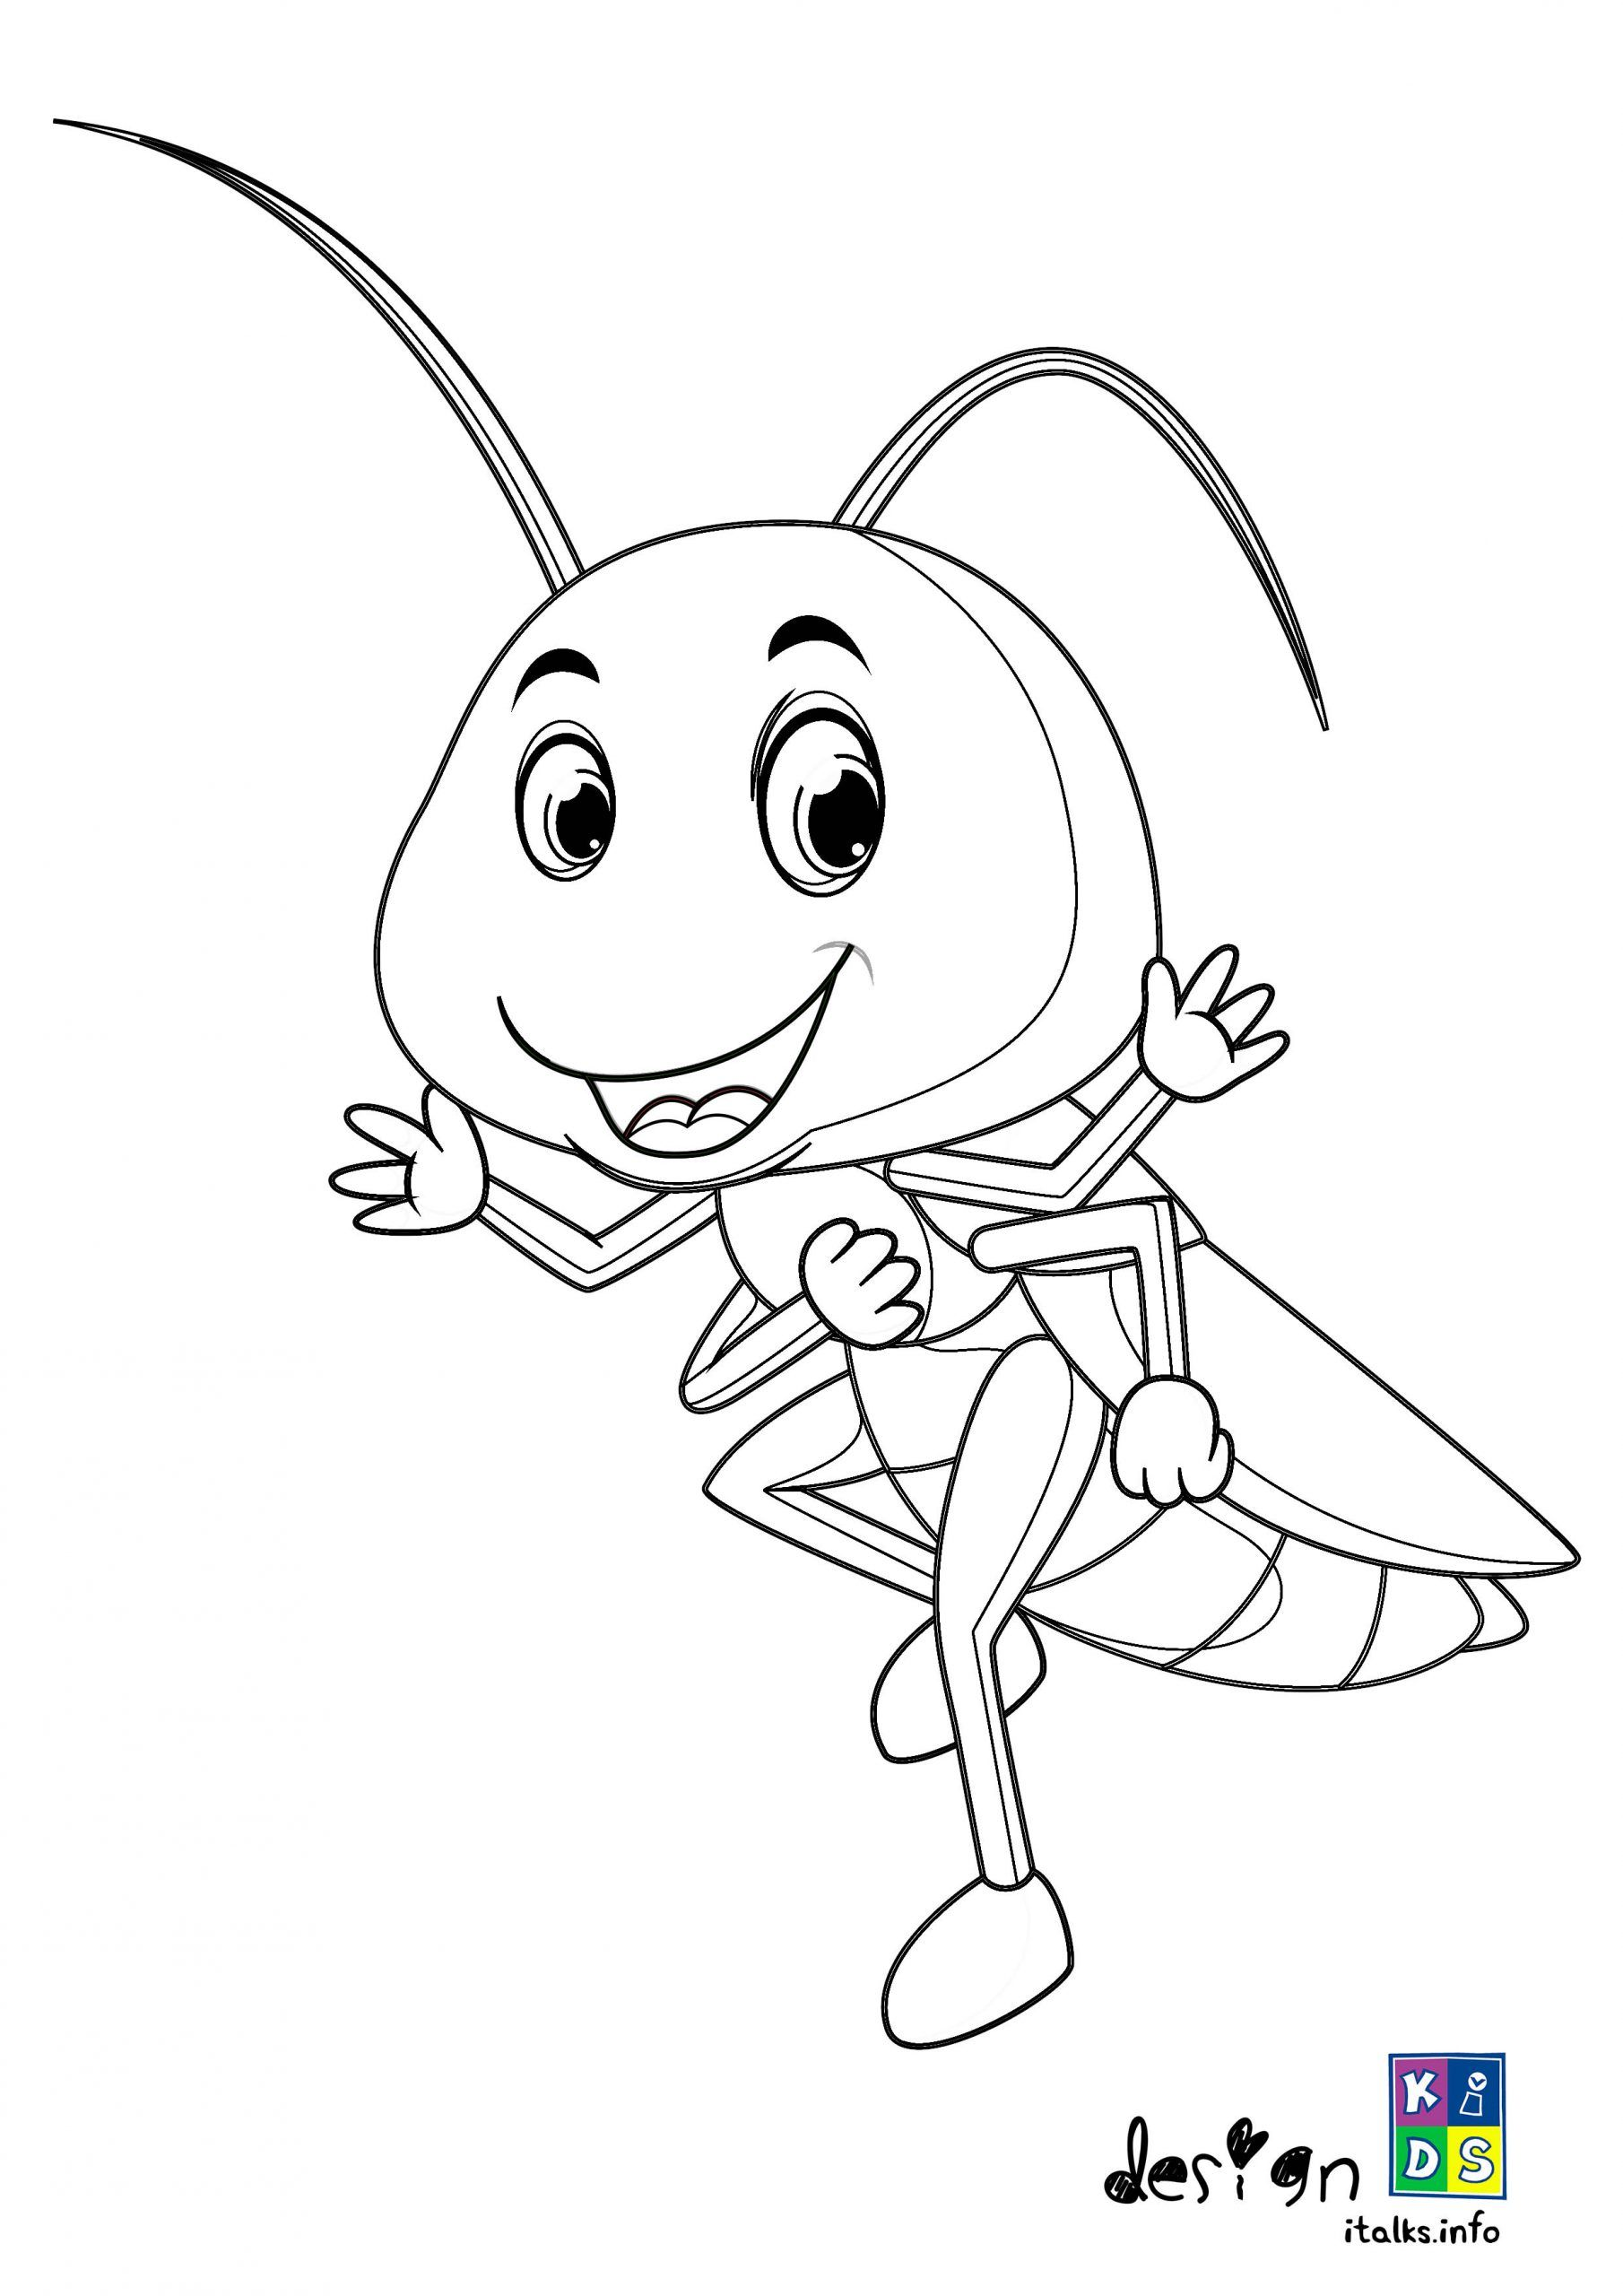 Funny Praying Mantis Coloring Page In 2020 With Images